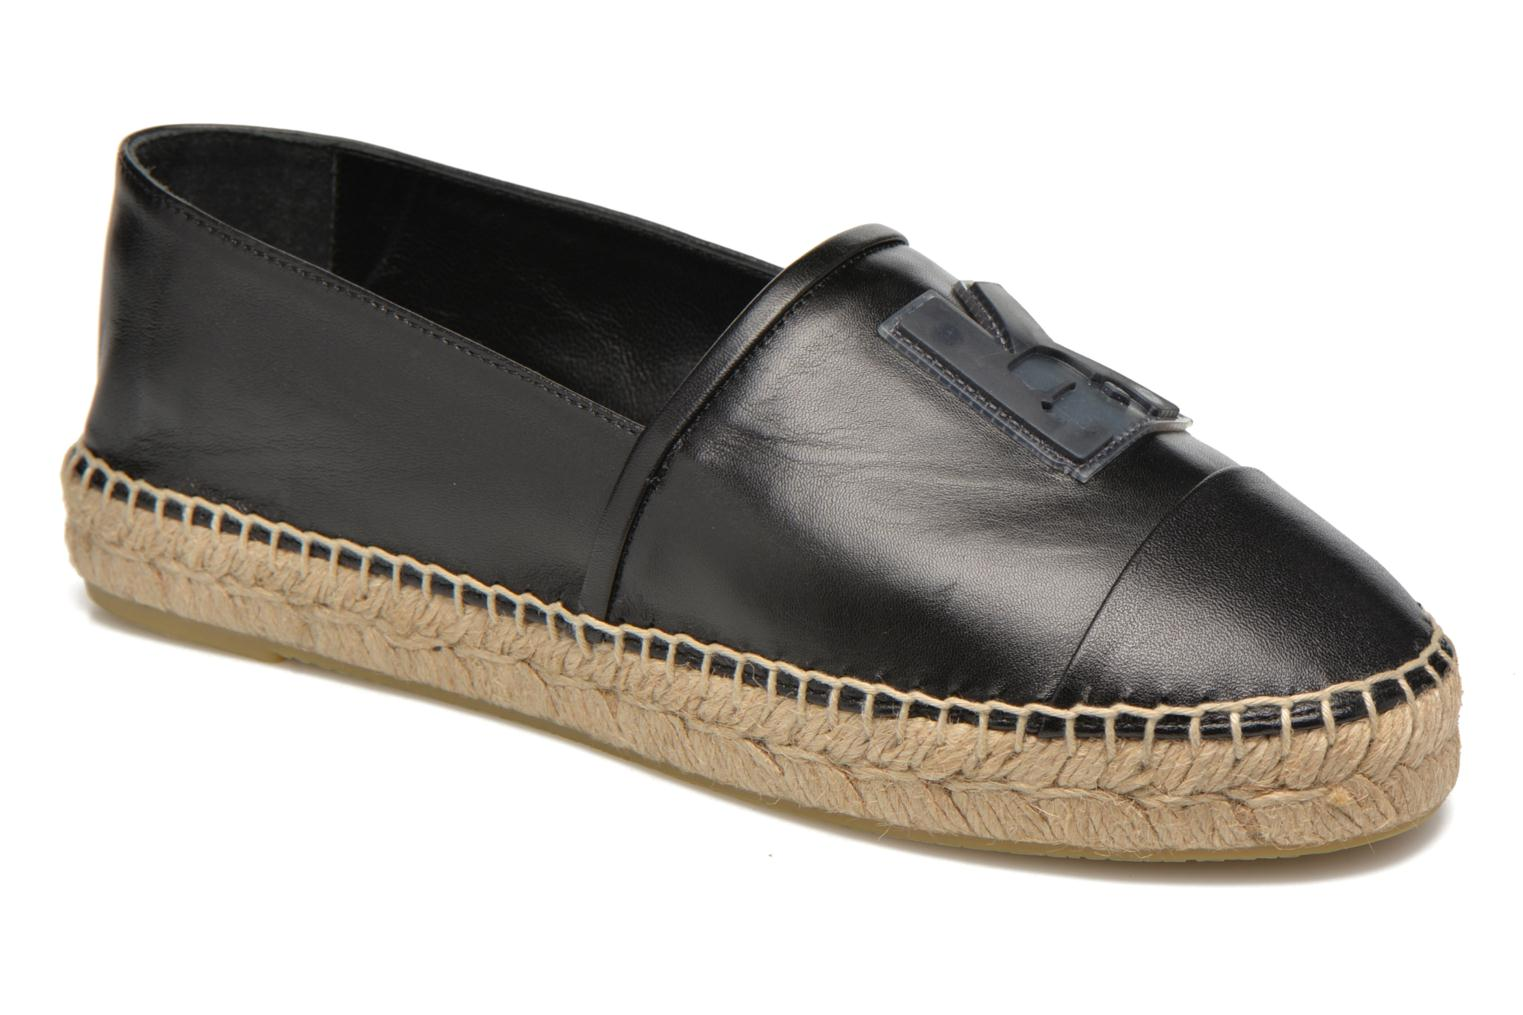 espadrilles-karl-leather-espadrille-by-karl-lagerfeld